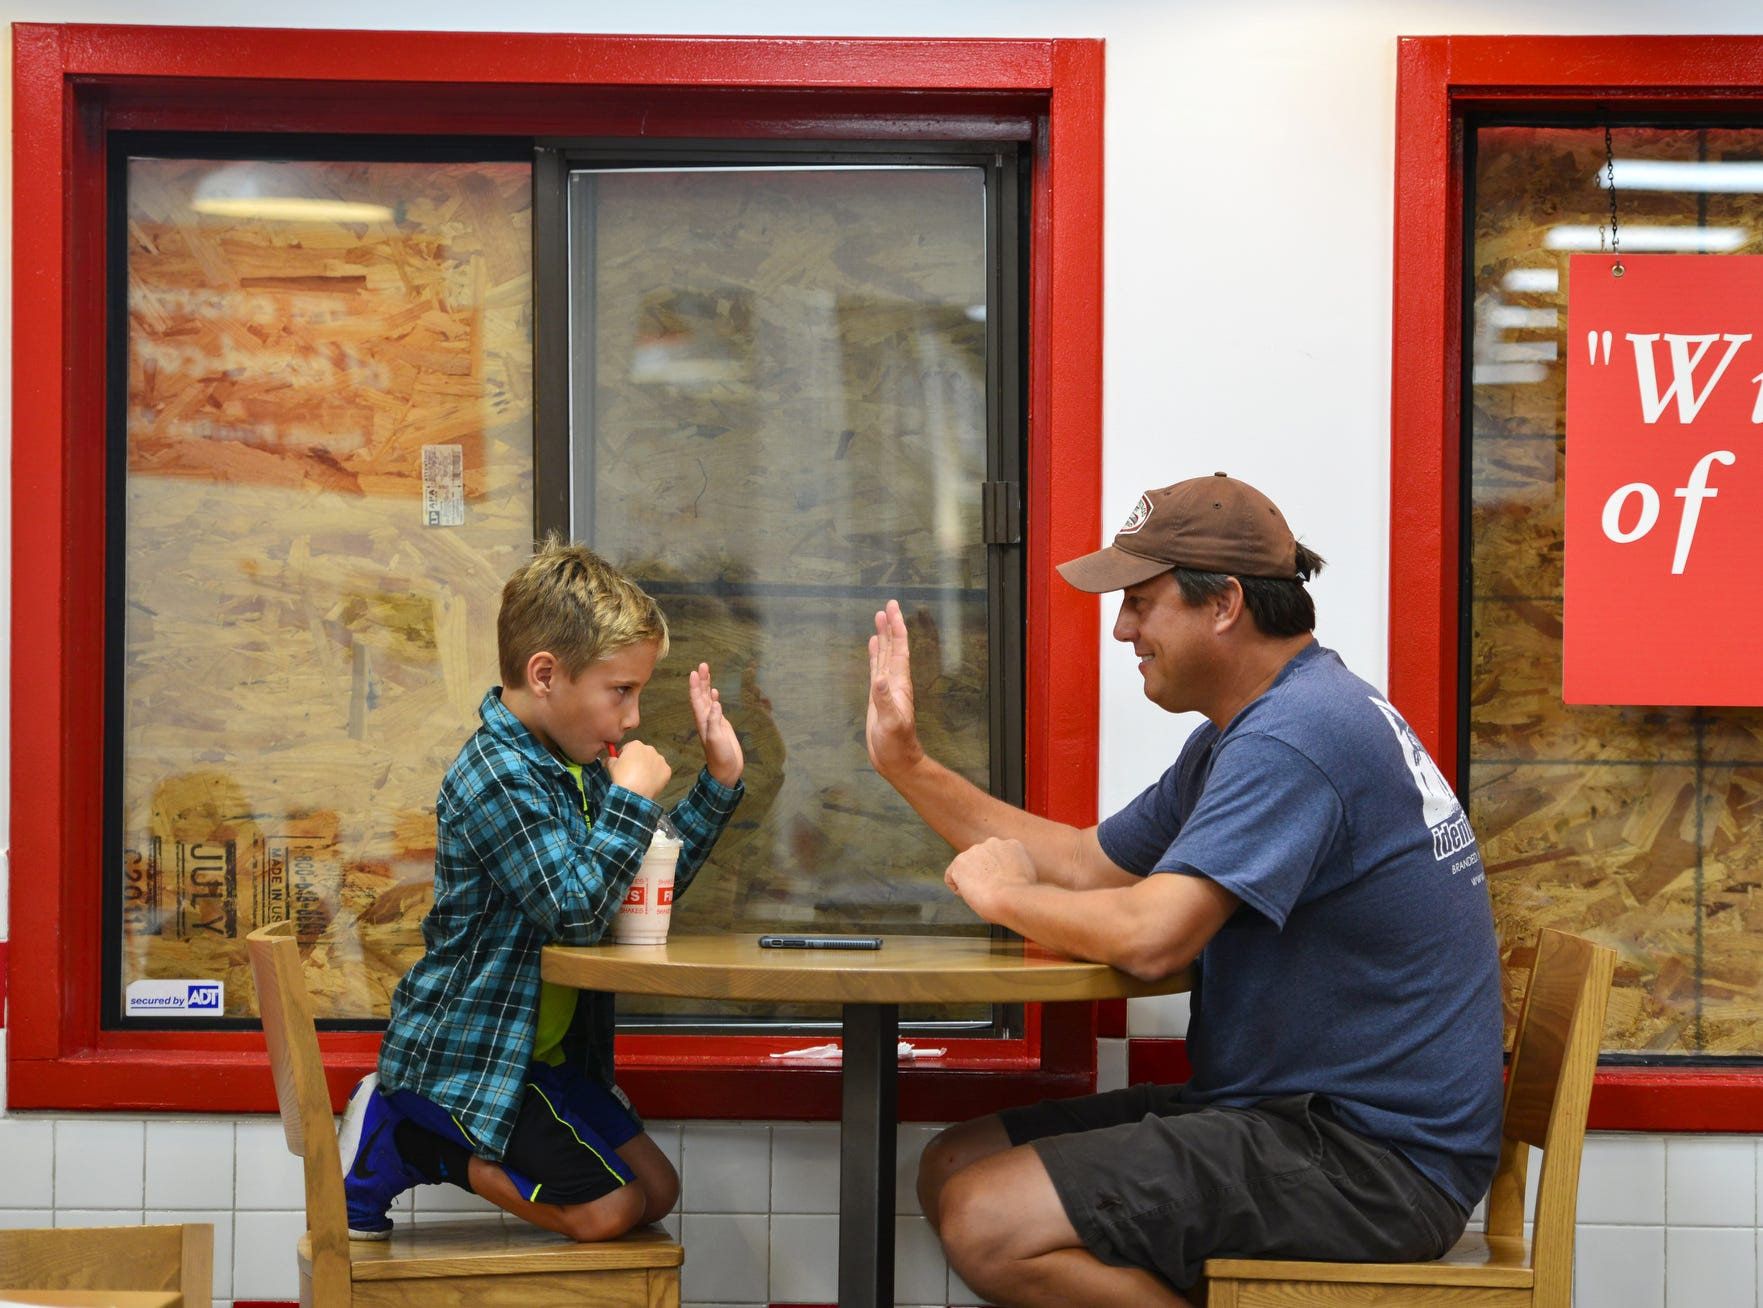 Sitting next to a boarded up window, Grant Lefevre, 7 of Kitty Hawk, N.C., plays tic tac toe with his father Alex at Five Guys, which is one of the only restaurants open in the Outer Banks, Friday afternoon. The Lefevre family has been holed up in their home since Wednesday and this was their first meal outside of their home.